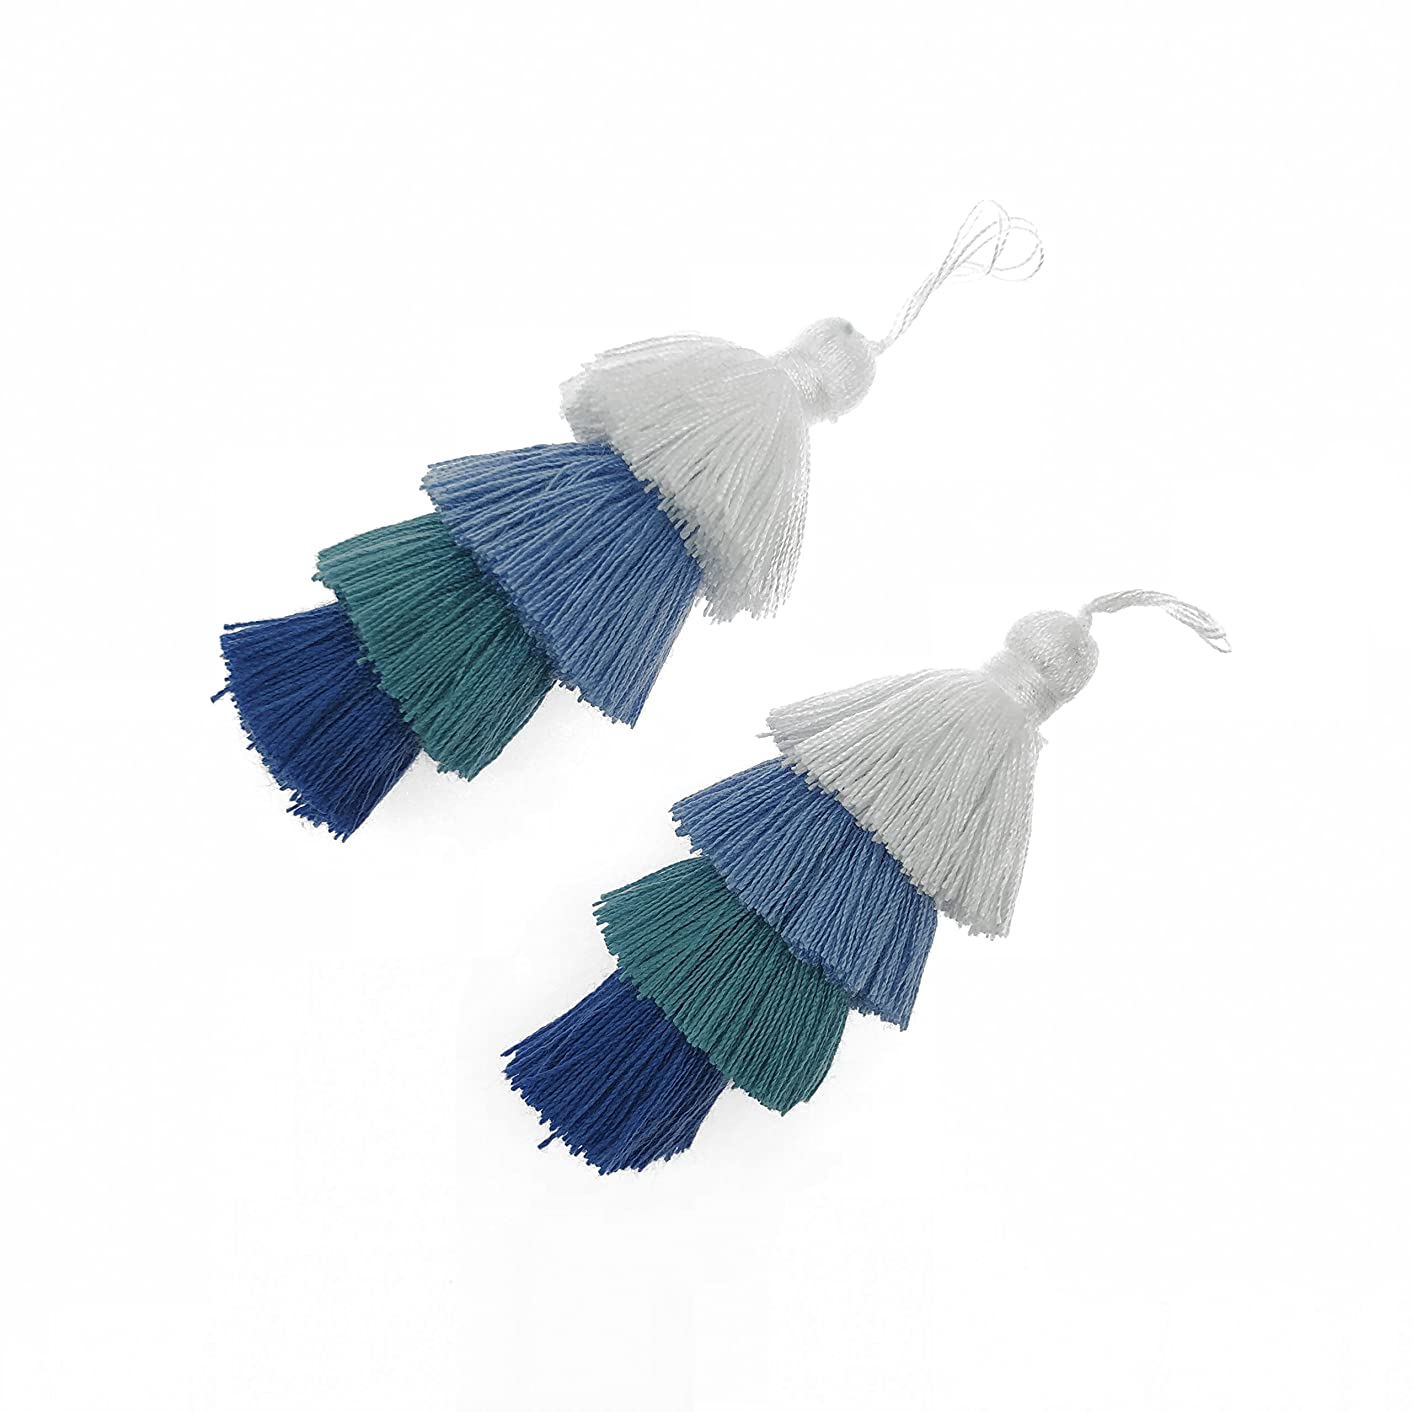 CHENGRUI 8CM 4 Layer Cotton Tassels For Jewelry Making, Diy, Jewelry Accessories, Pack of 2 Pcs